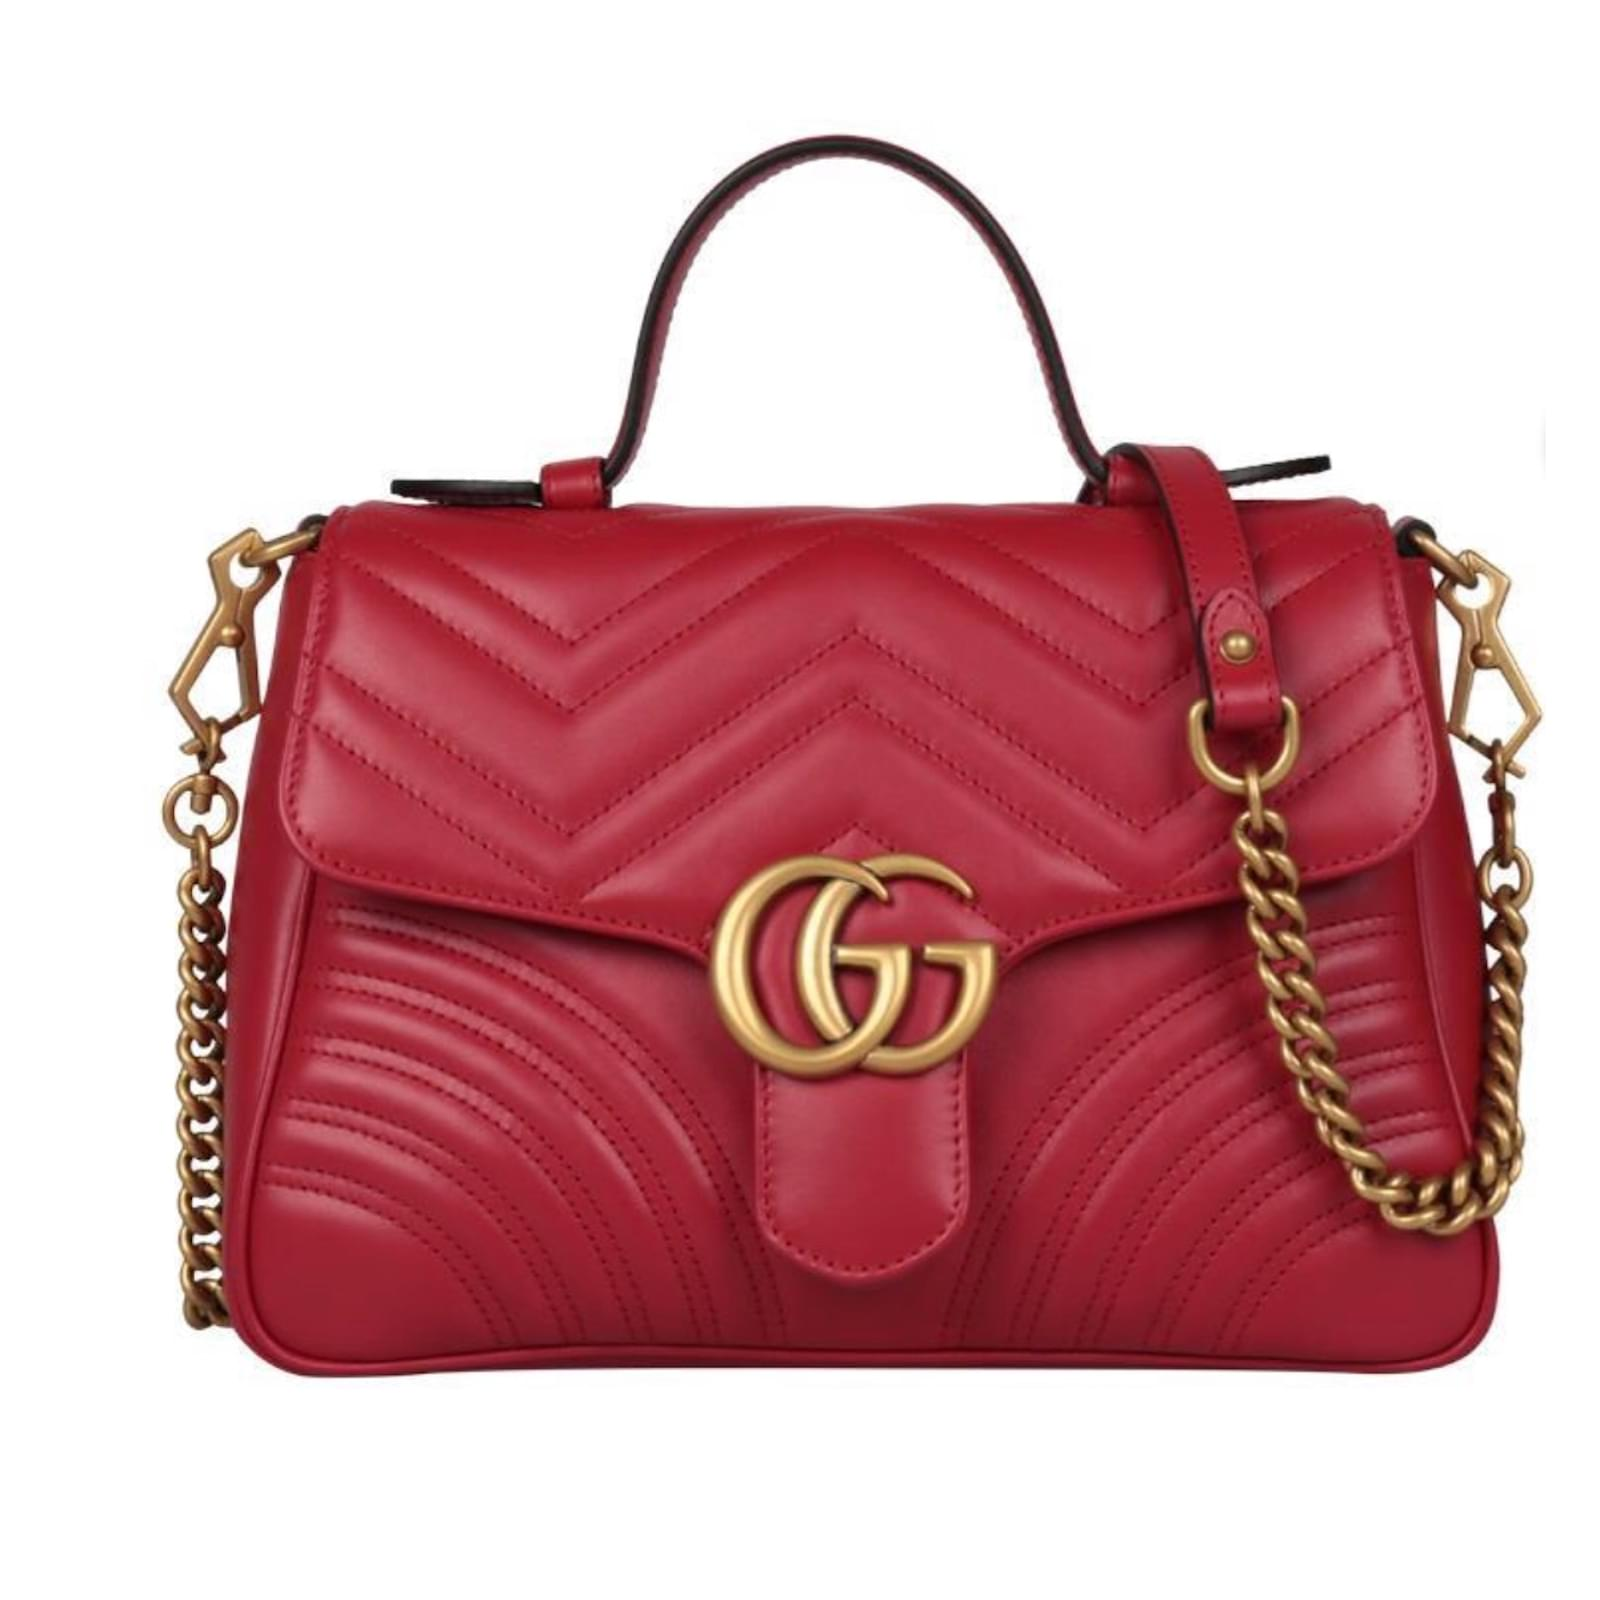 432603fd1 Gucci Handbags Handbags Leather Red ref.73299 - Joli Closet